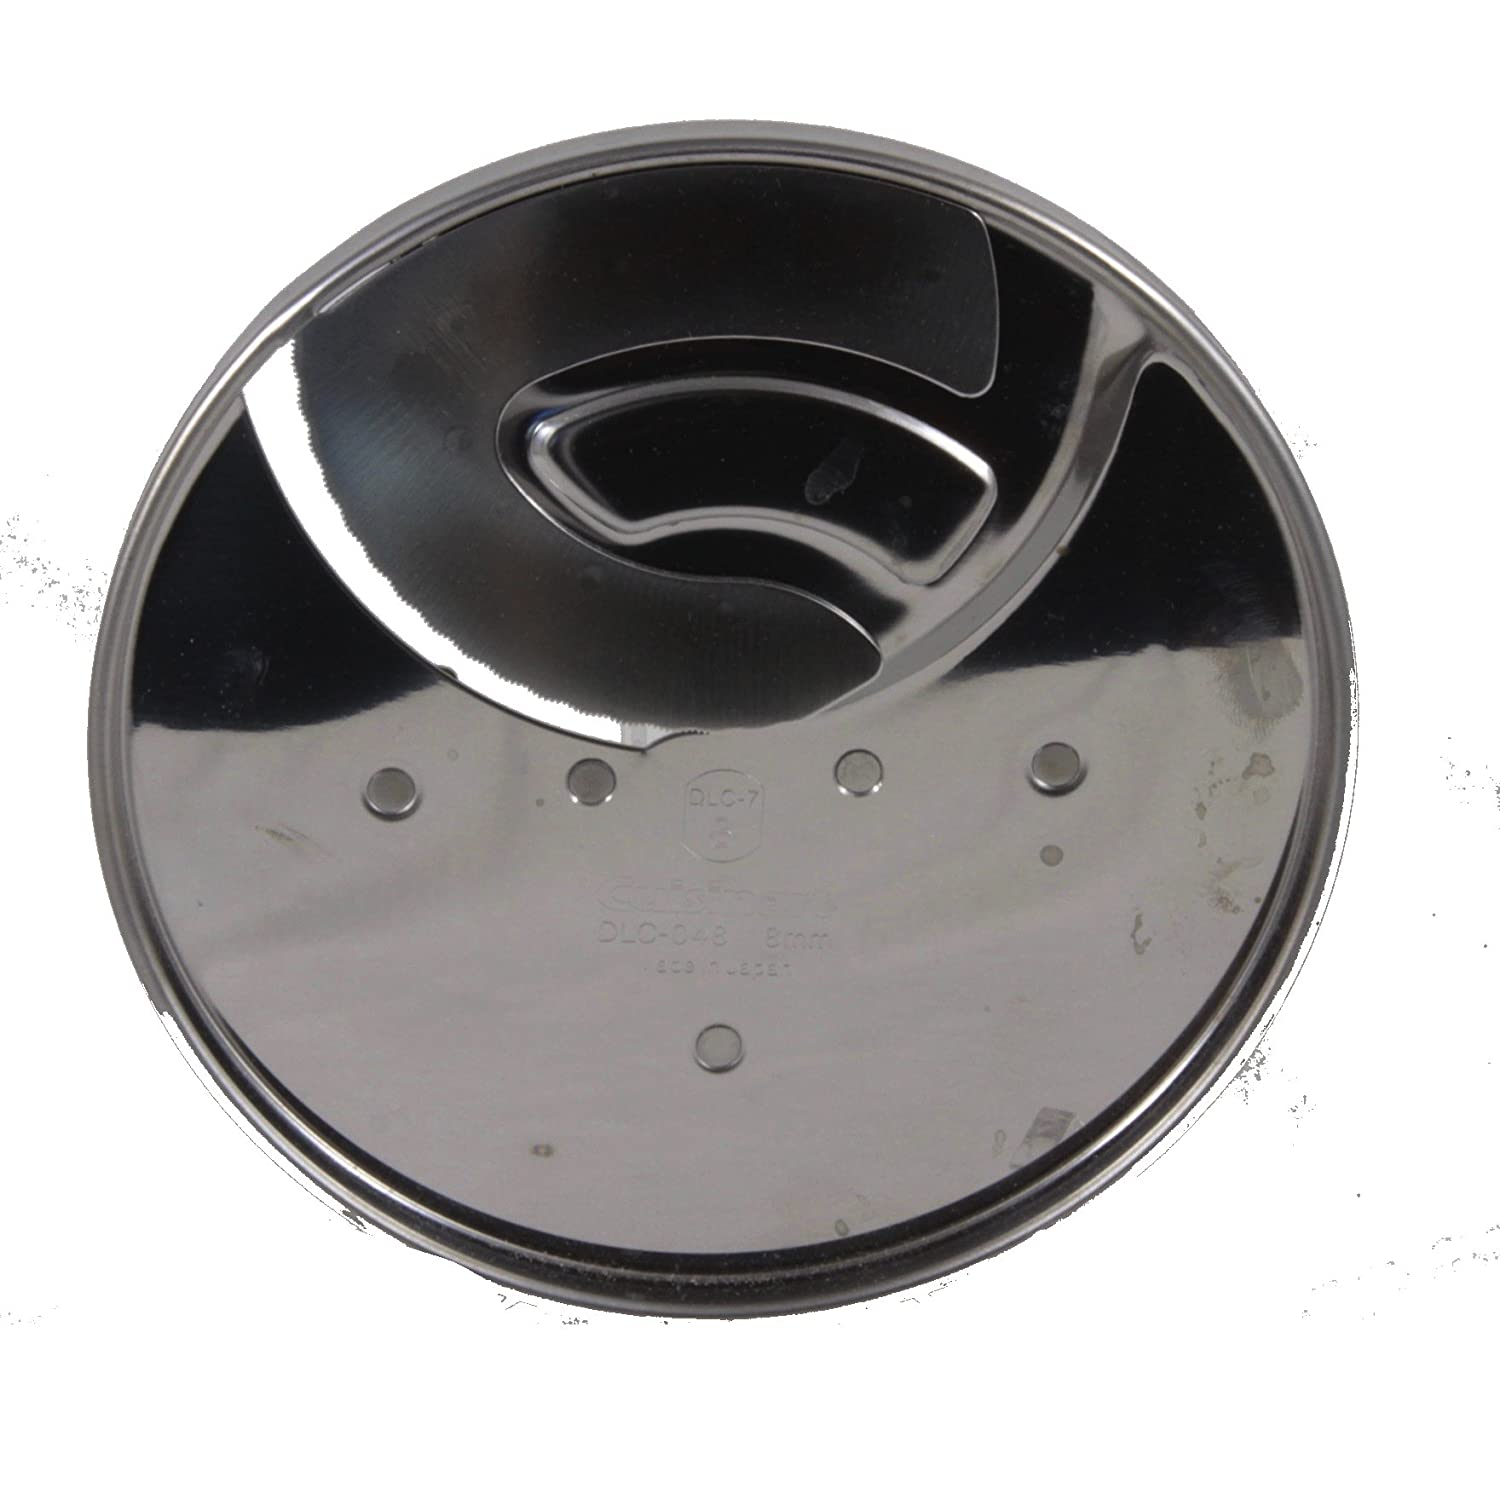 Cuisinart DLC-048 Extra-Thick Slicing Disc for Food Processor, 8mm